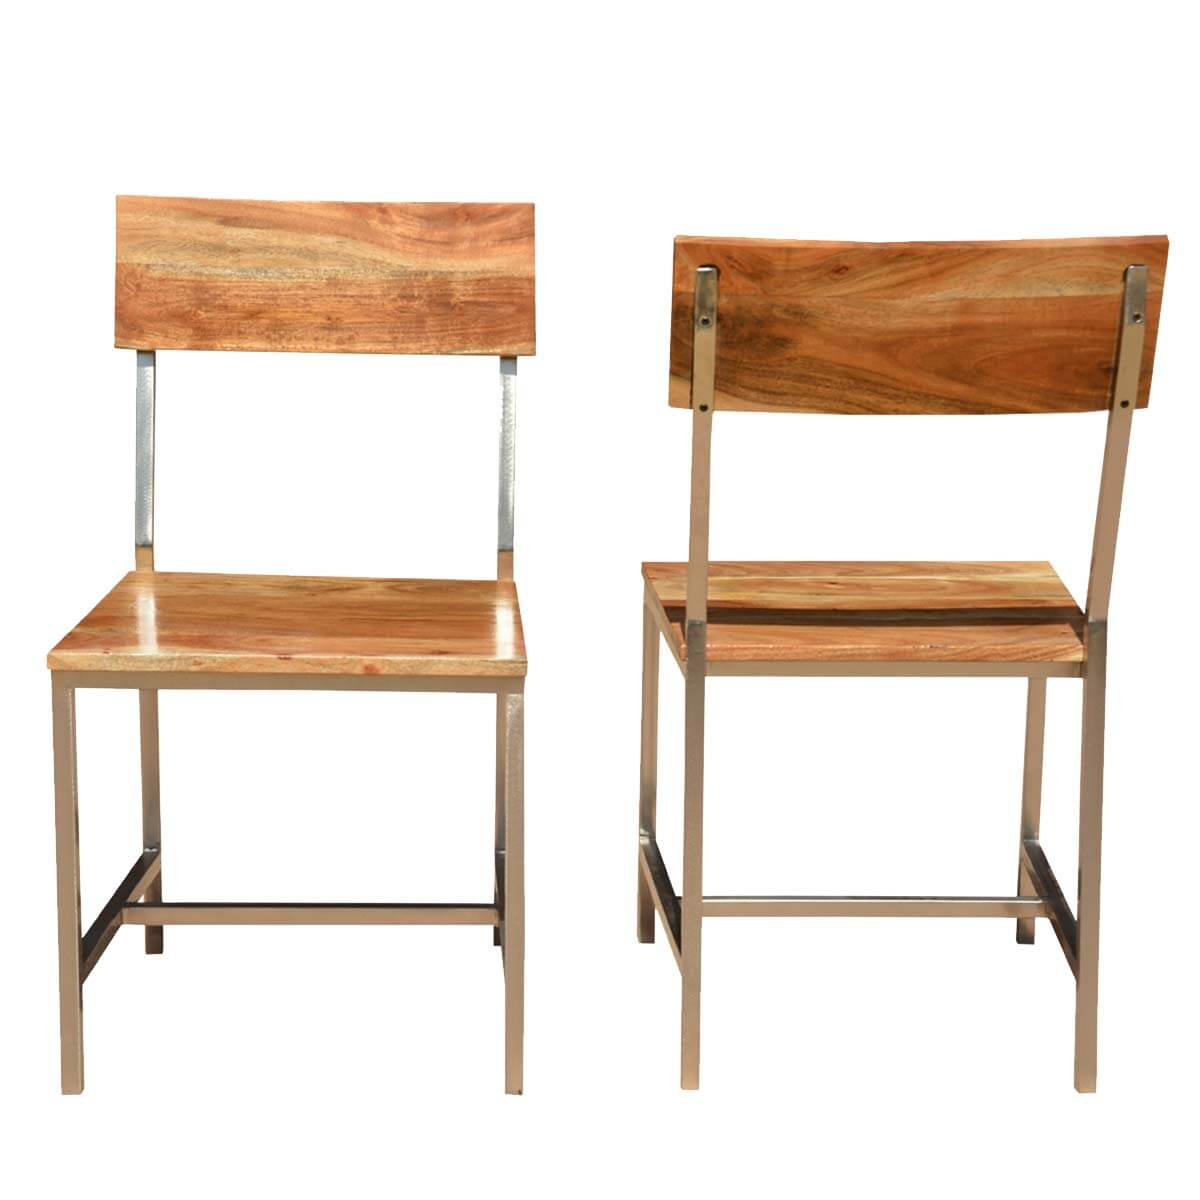 Rustic Dining Chairs Solid Wood And Iron Rustic Dining Chair Set Of 2